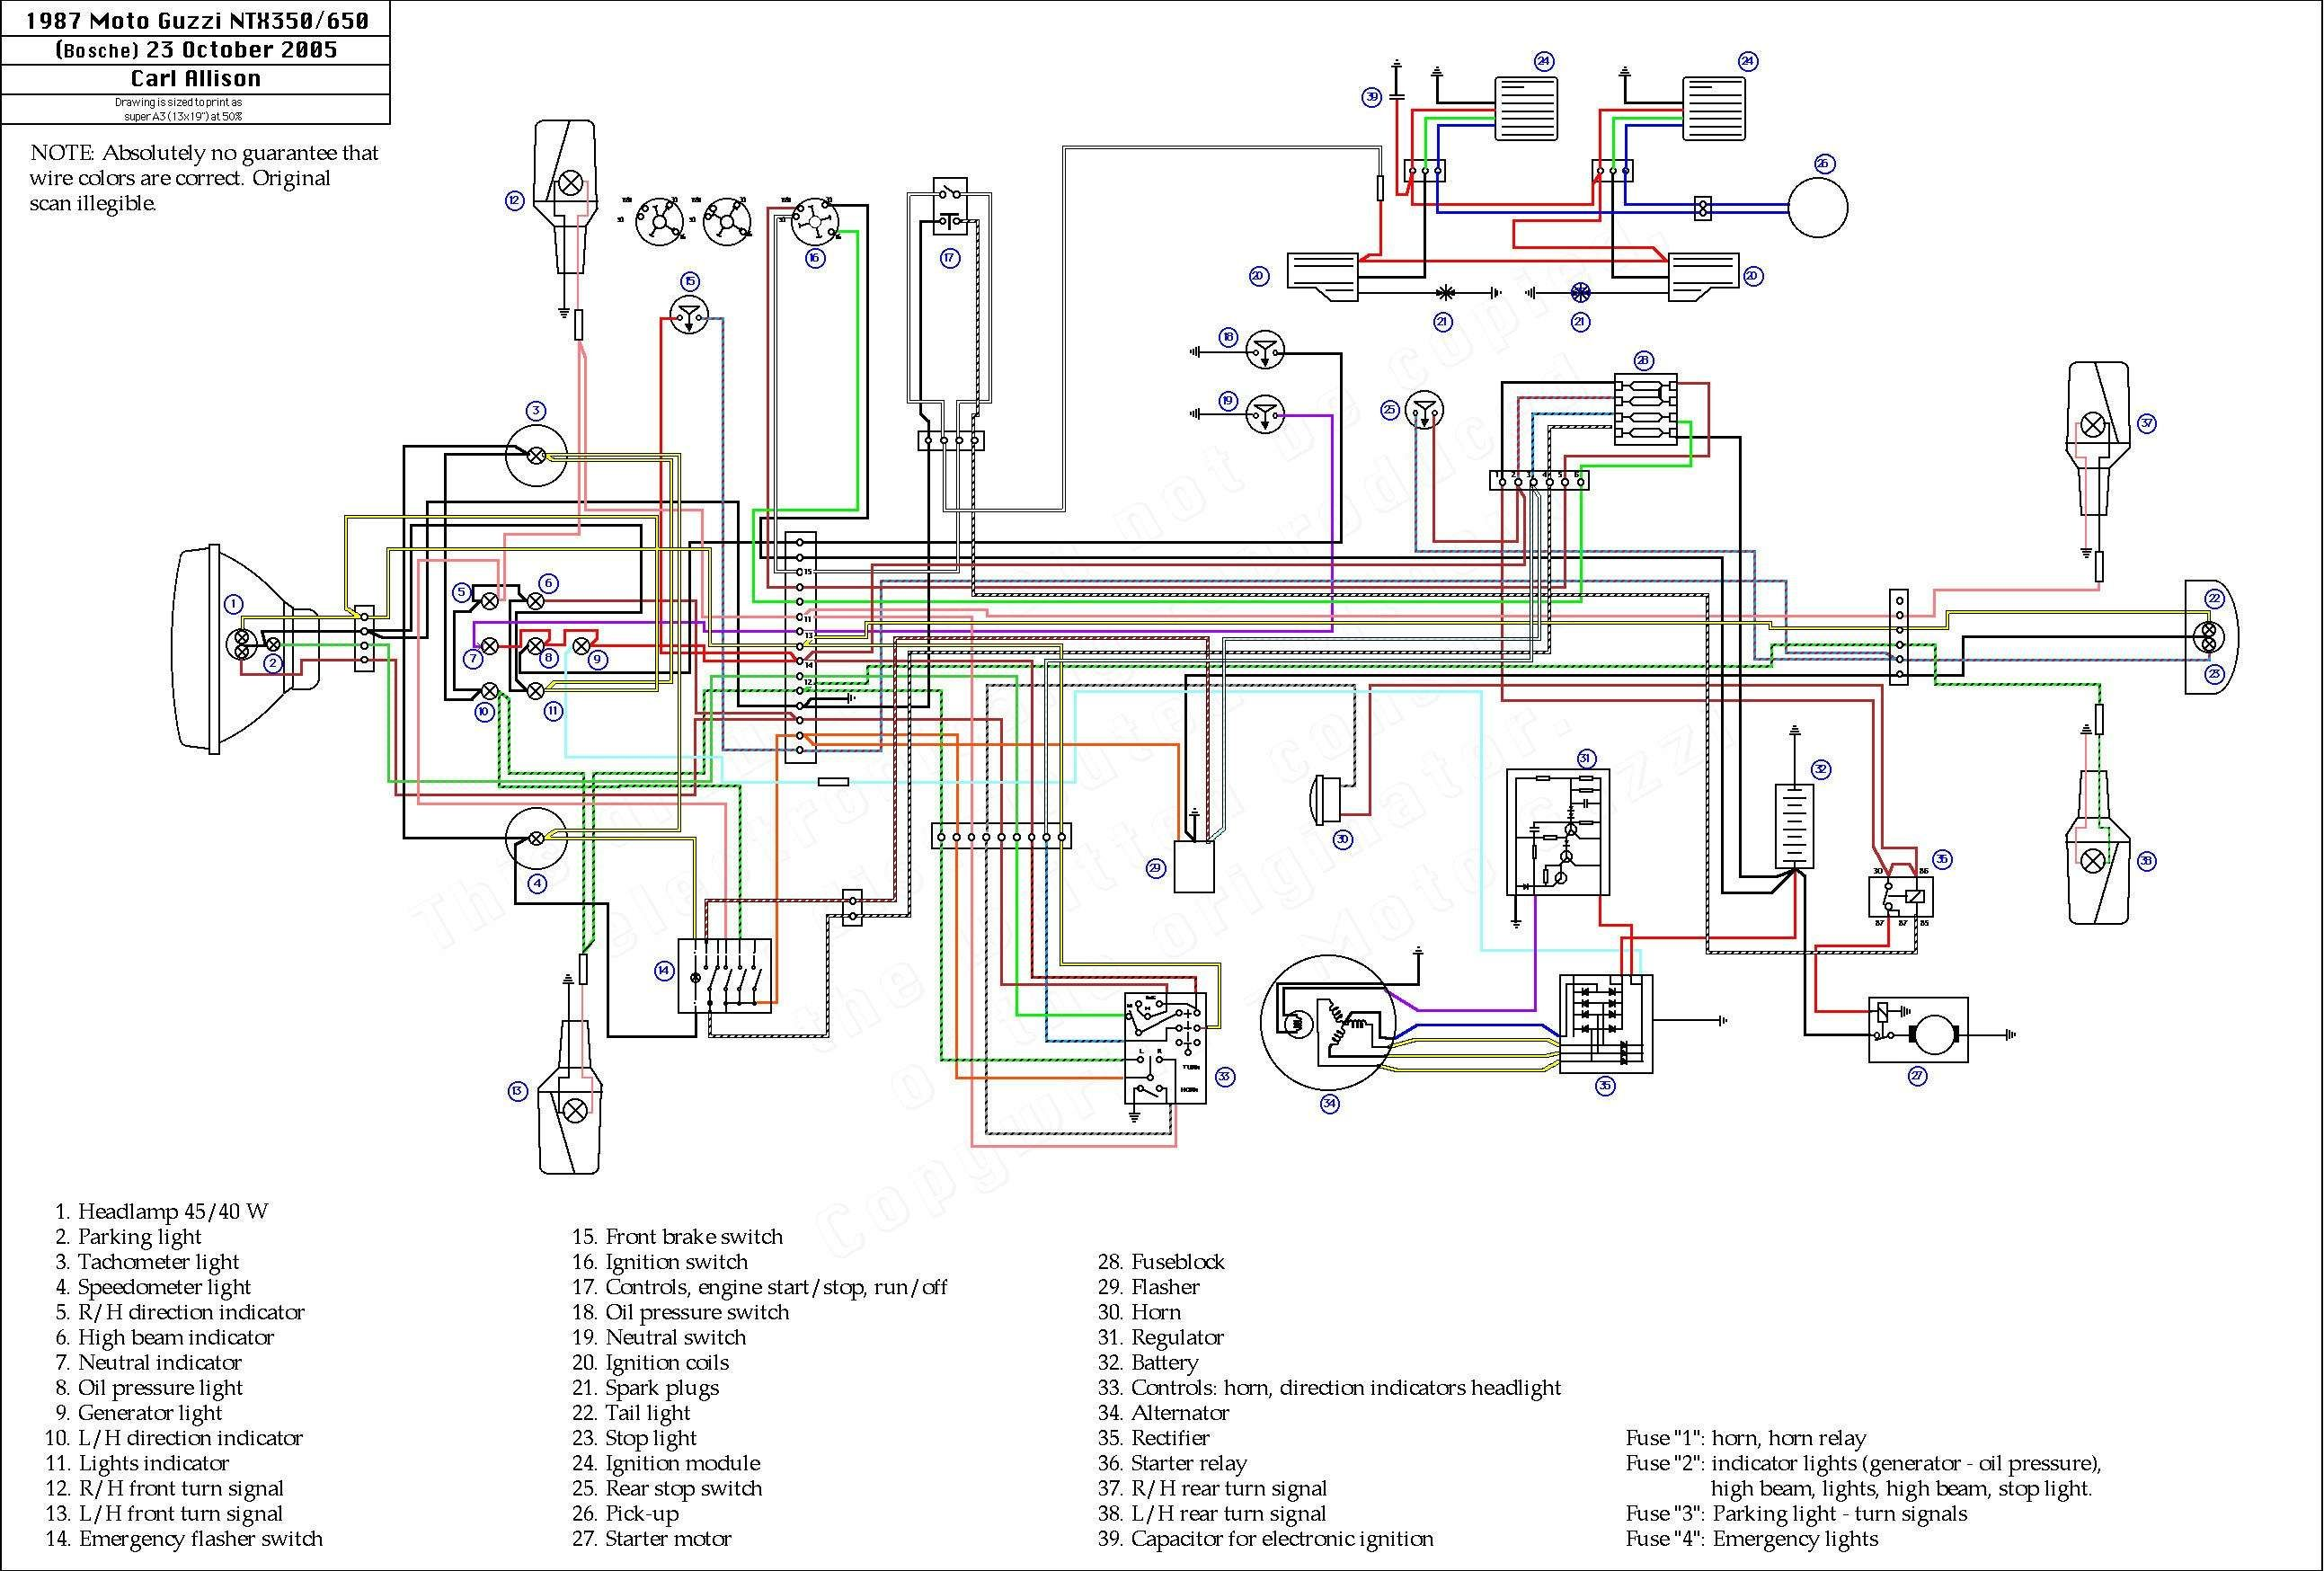 Wiring Diagram Electrical Wiring Diagram Electrical Electrical Diagram Diagram Electrical Wiring Diagram